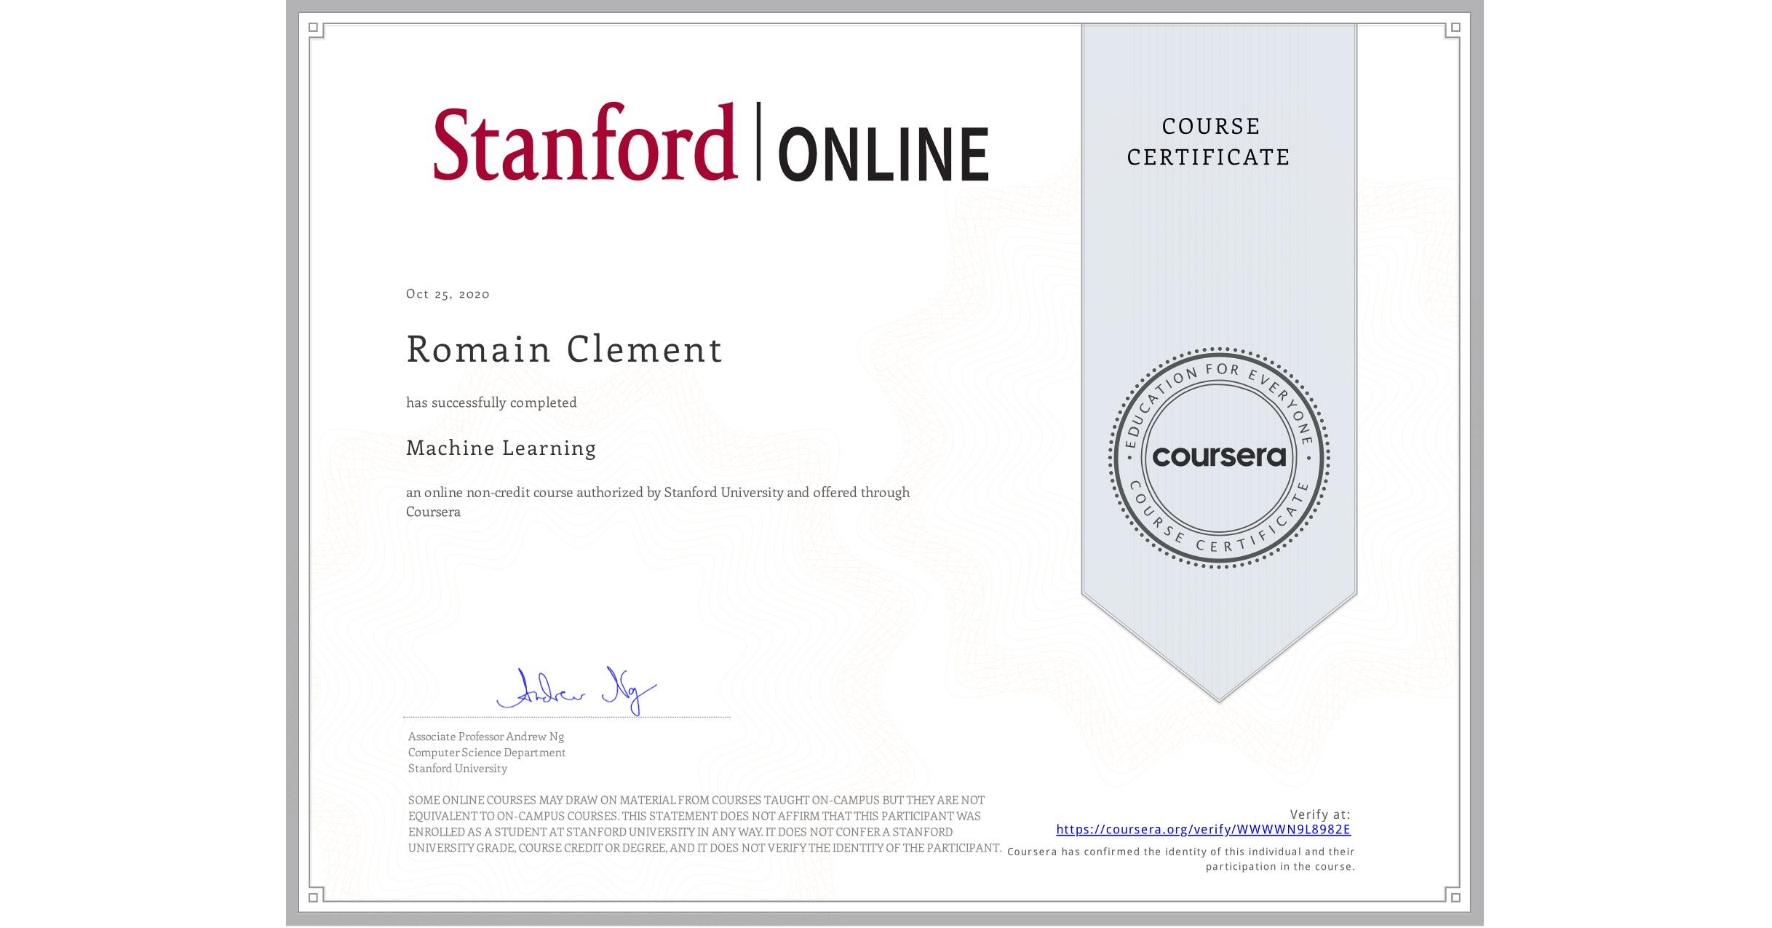 View certificate for Romain Clement, Machine Learning, an online non-credit course authorized by Stanford University and offered through Coursera